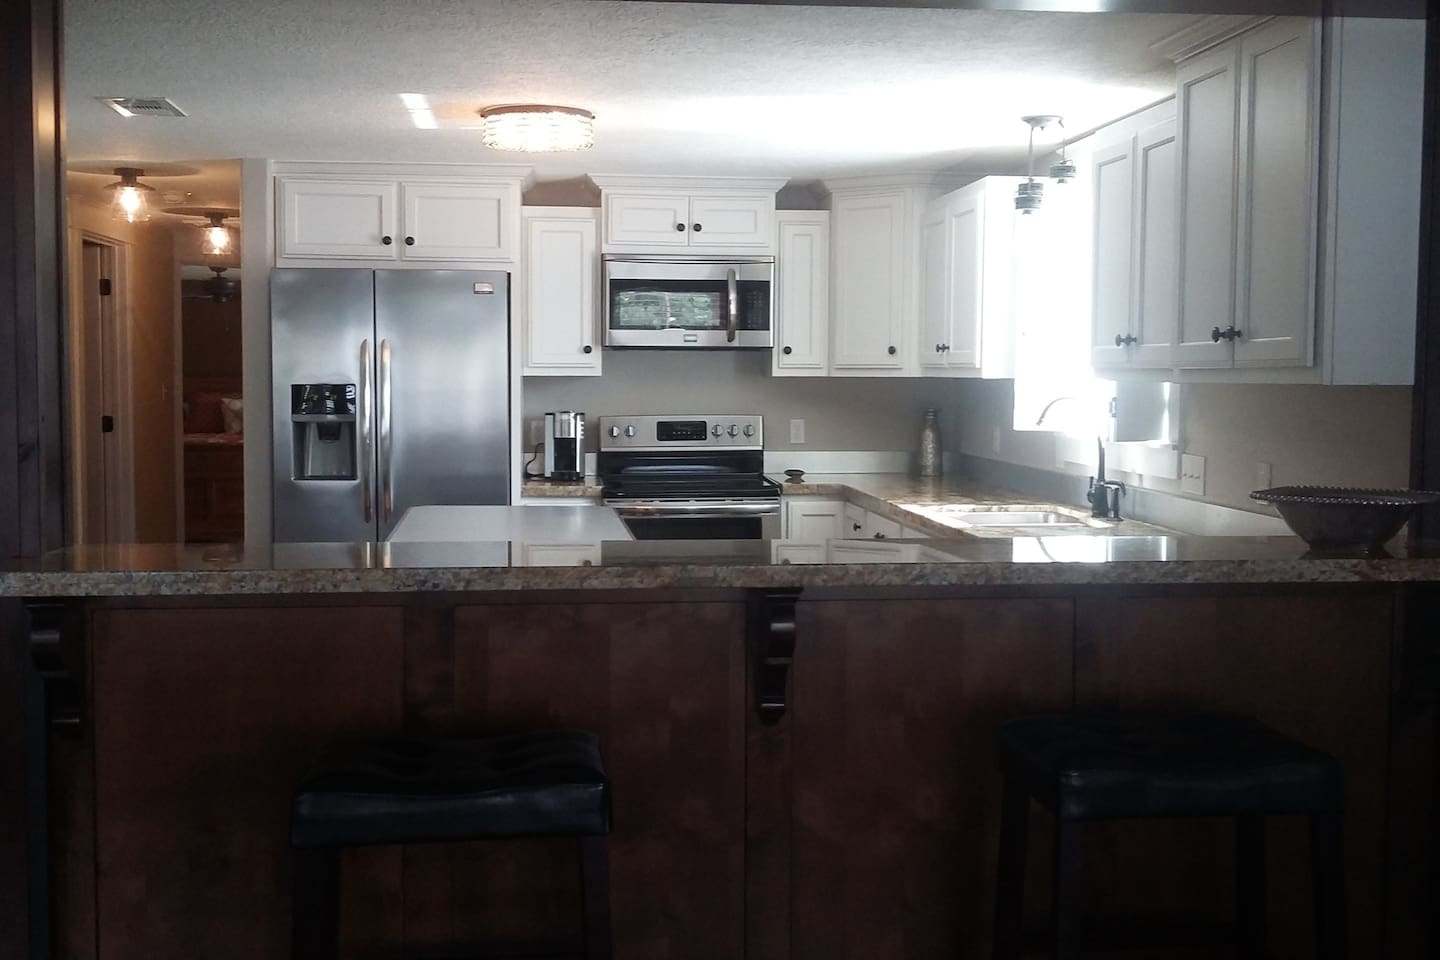 Full Kitchen with Stainless Appliances, Granite Countertops, Custom Cabinetry, Cookware, Dishes, and Keurig Coffee Maker.